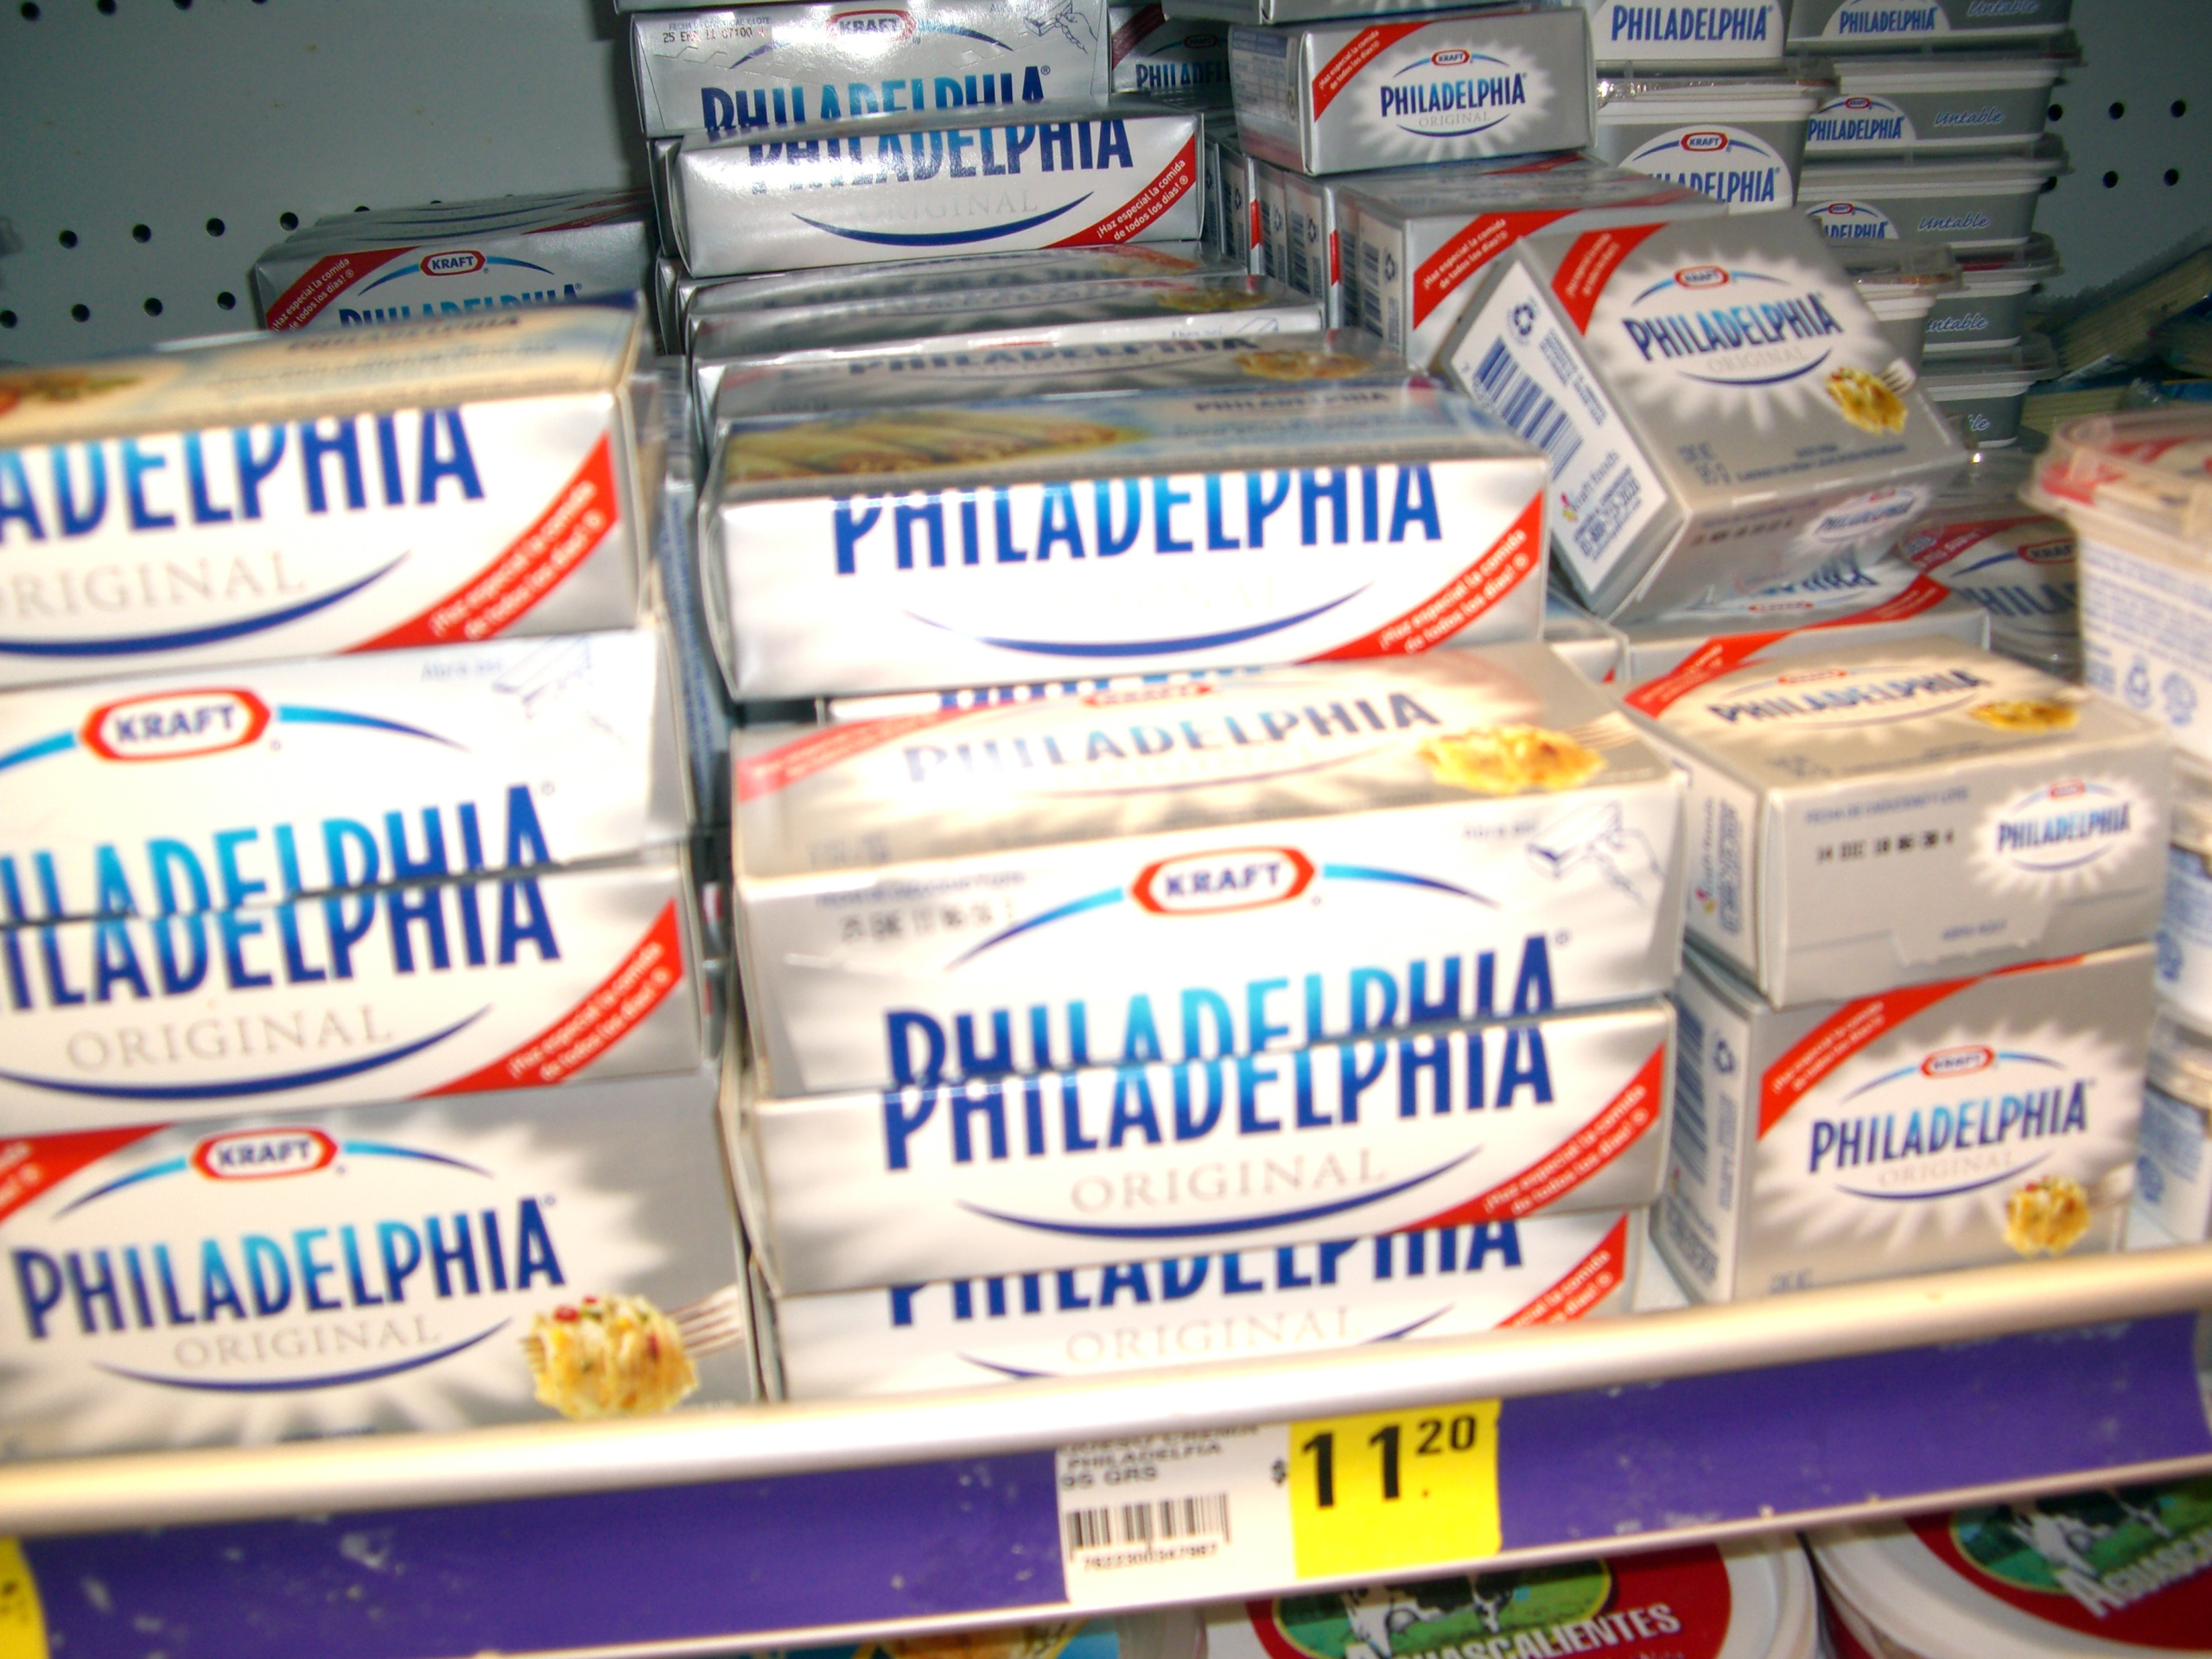 Packages of Philadelphia Cream Cheese